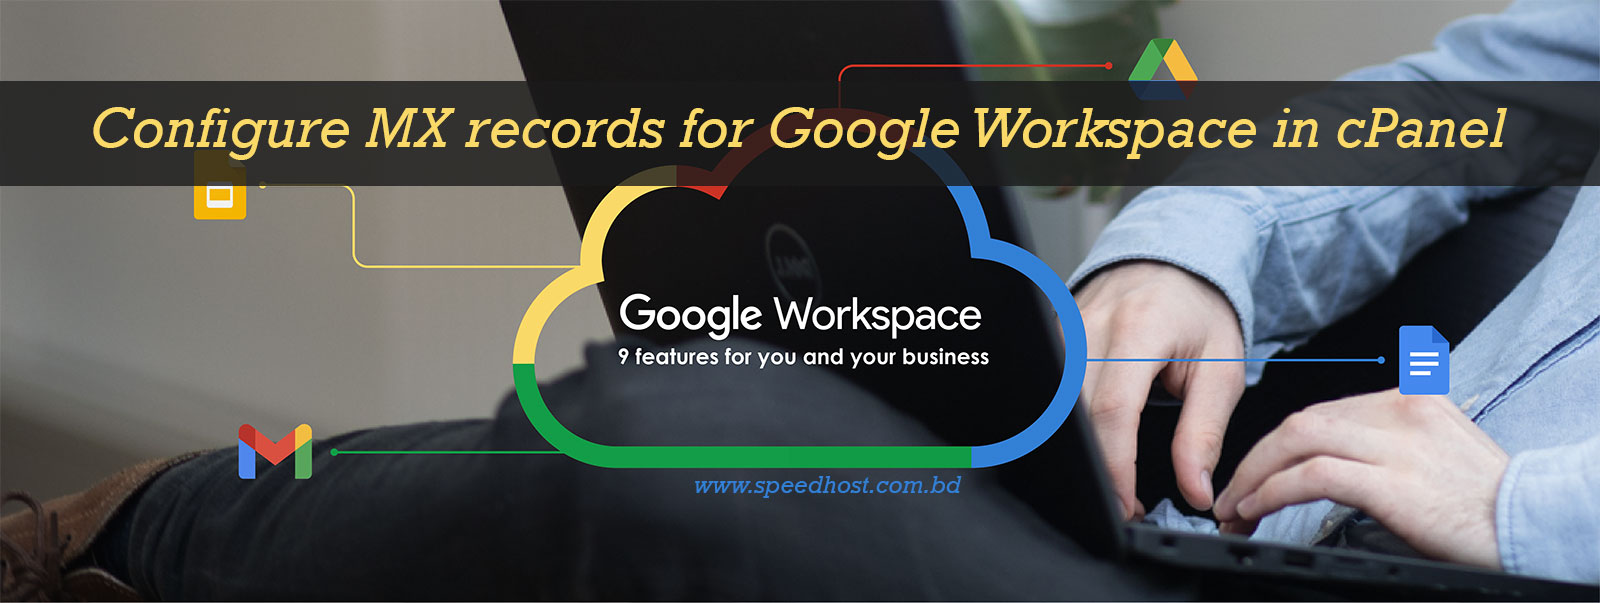 How to configure MX records for Google Workspace (G Suite) in cPanel?